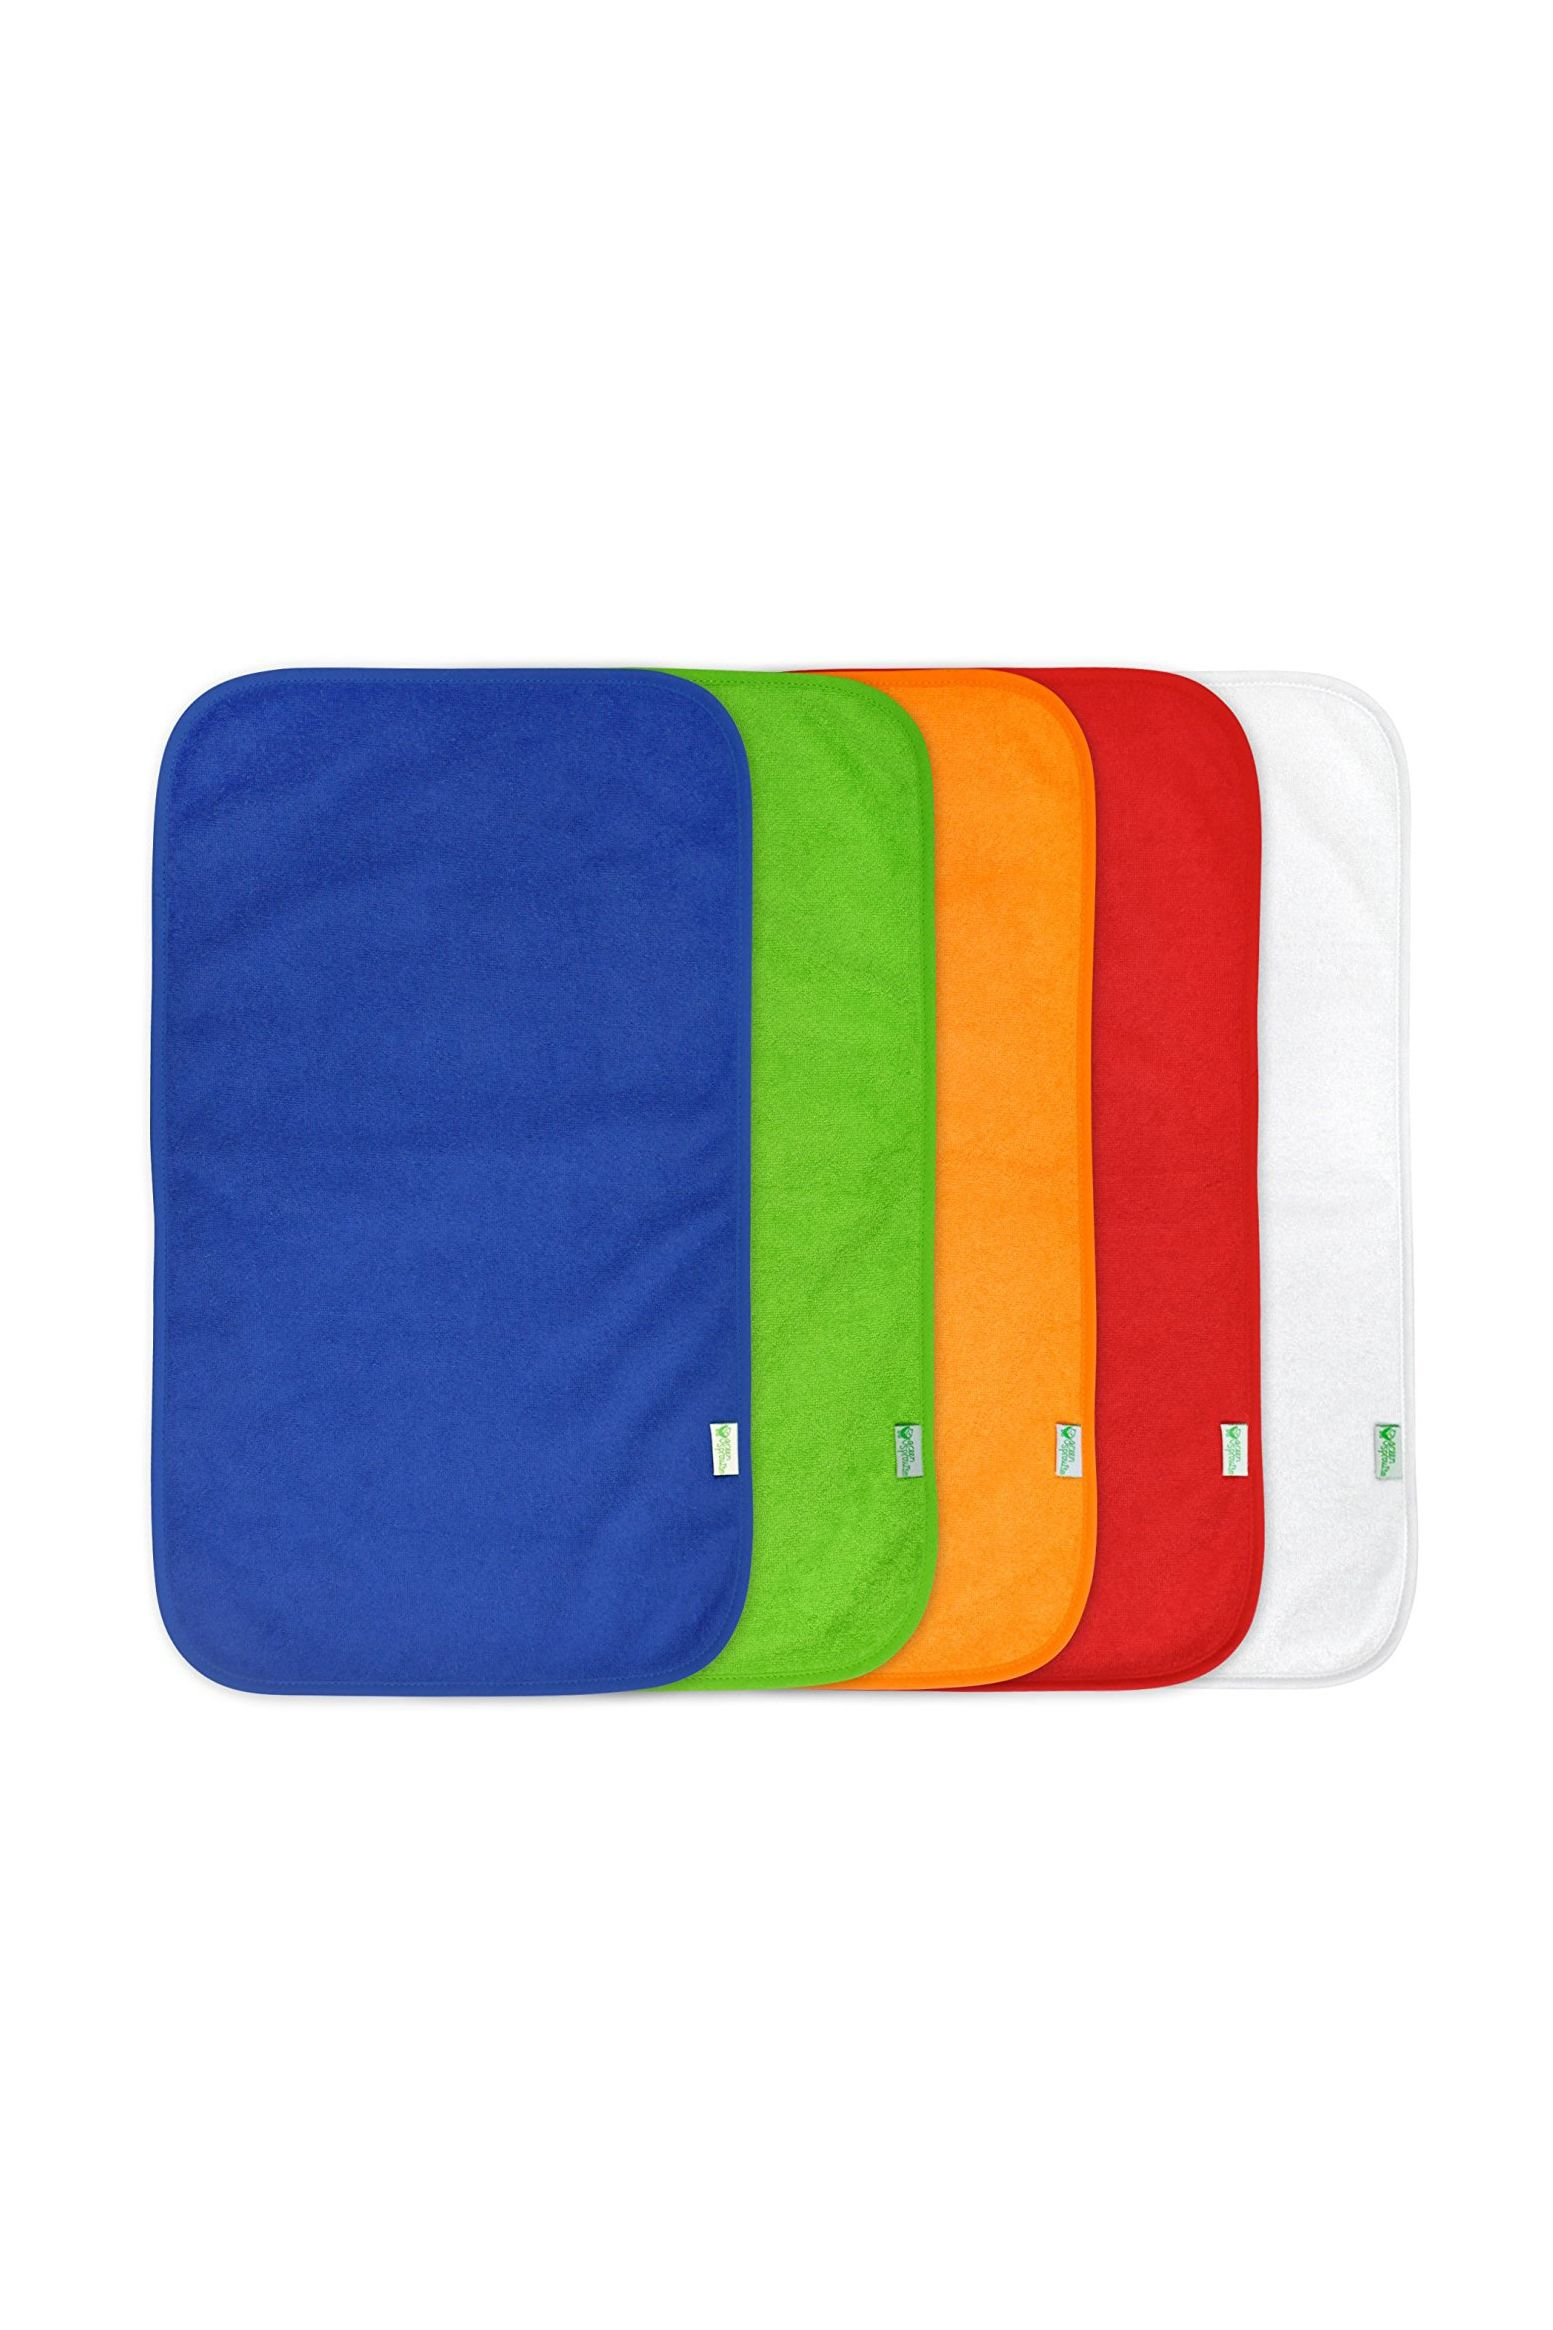 green sprouts stay-dry burp pads